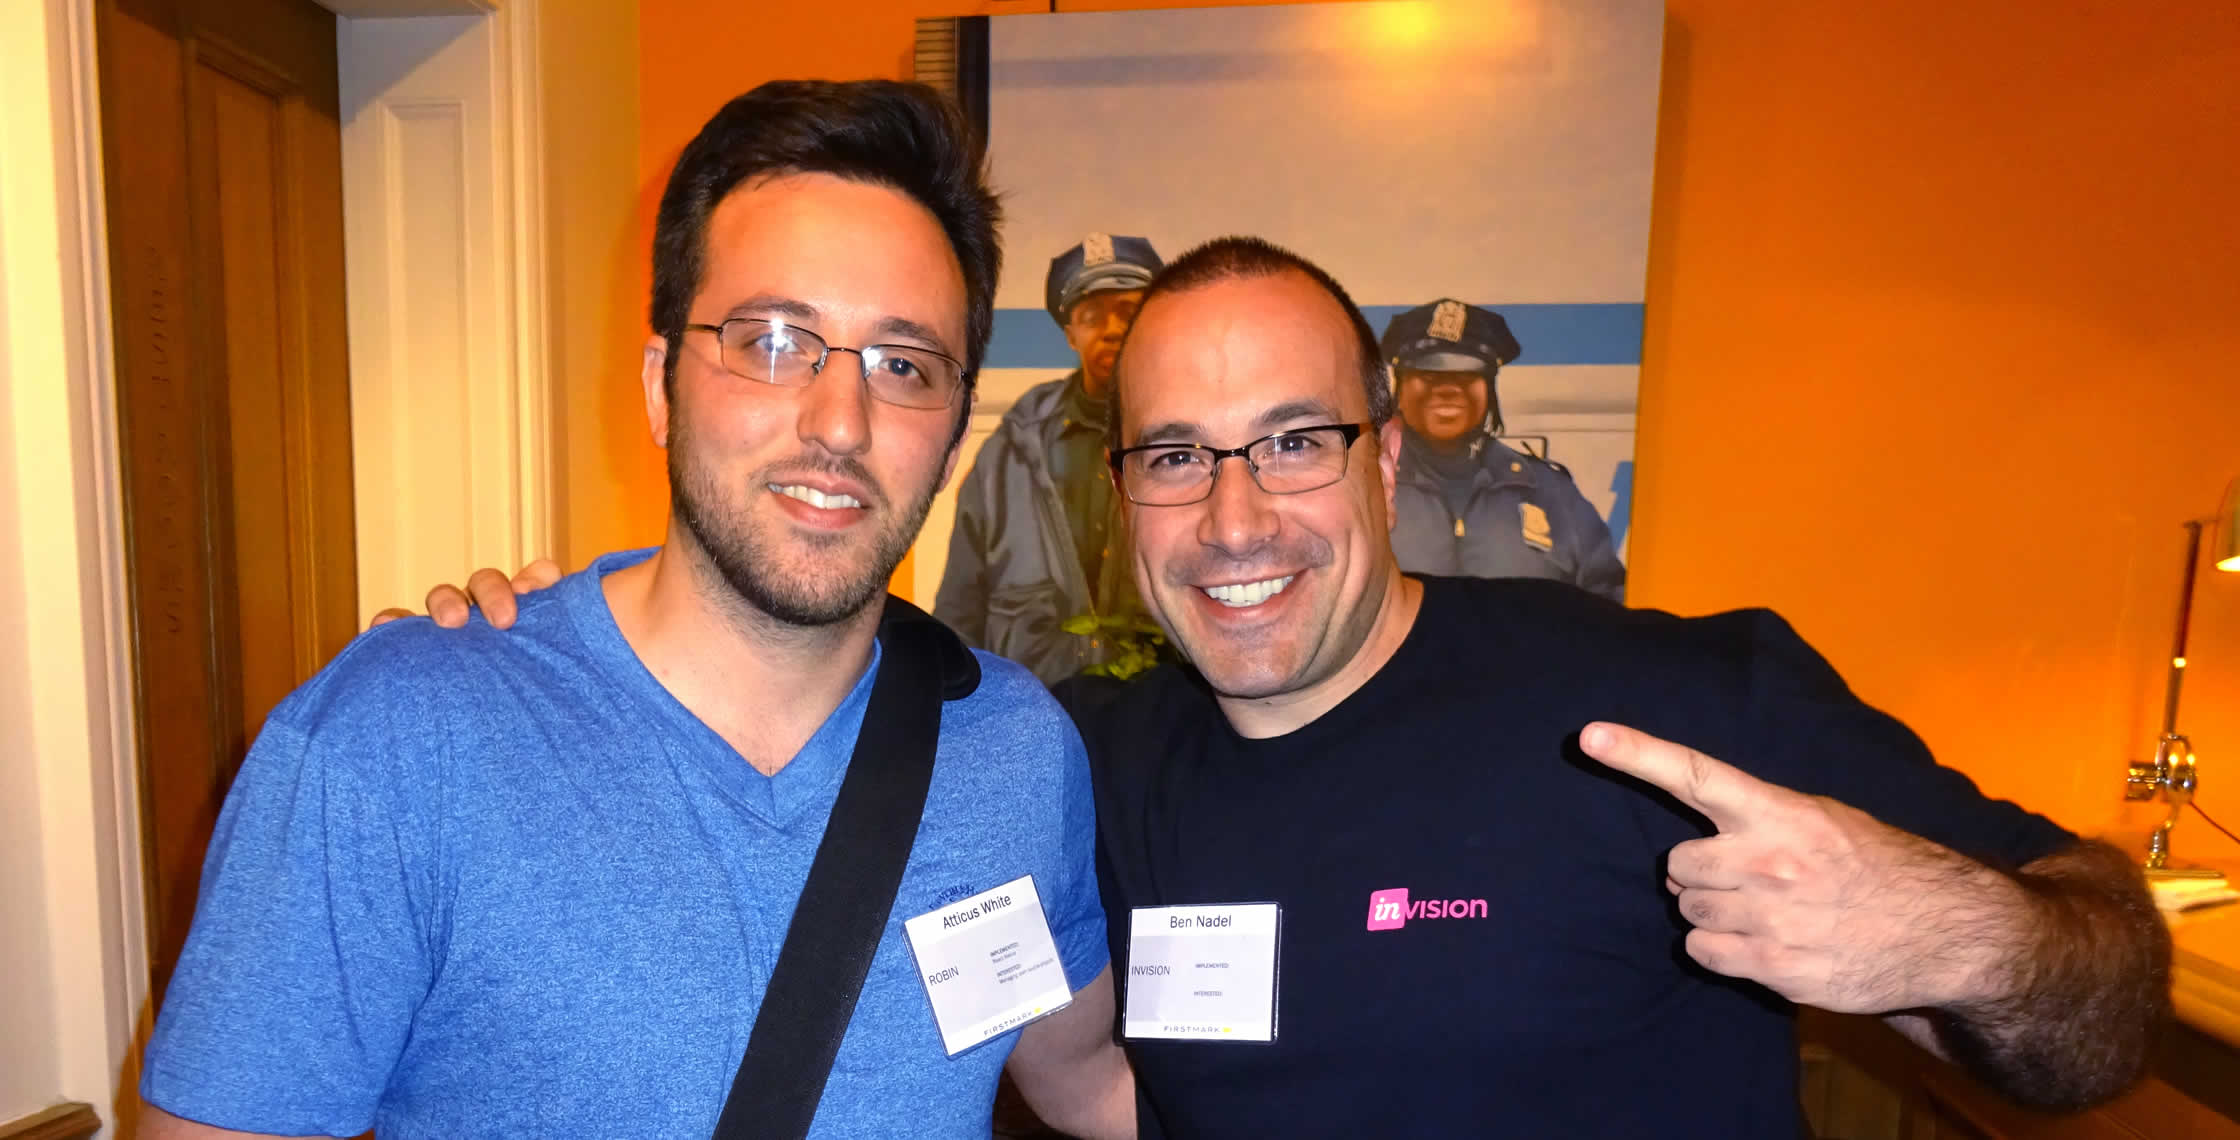 Ben Nadel at FirstMark Tech Summit (New York, NY) with: Atticus White